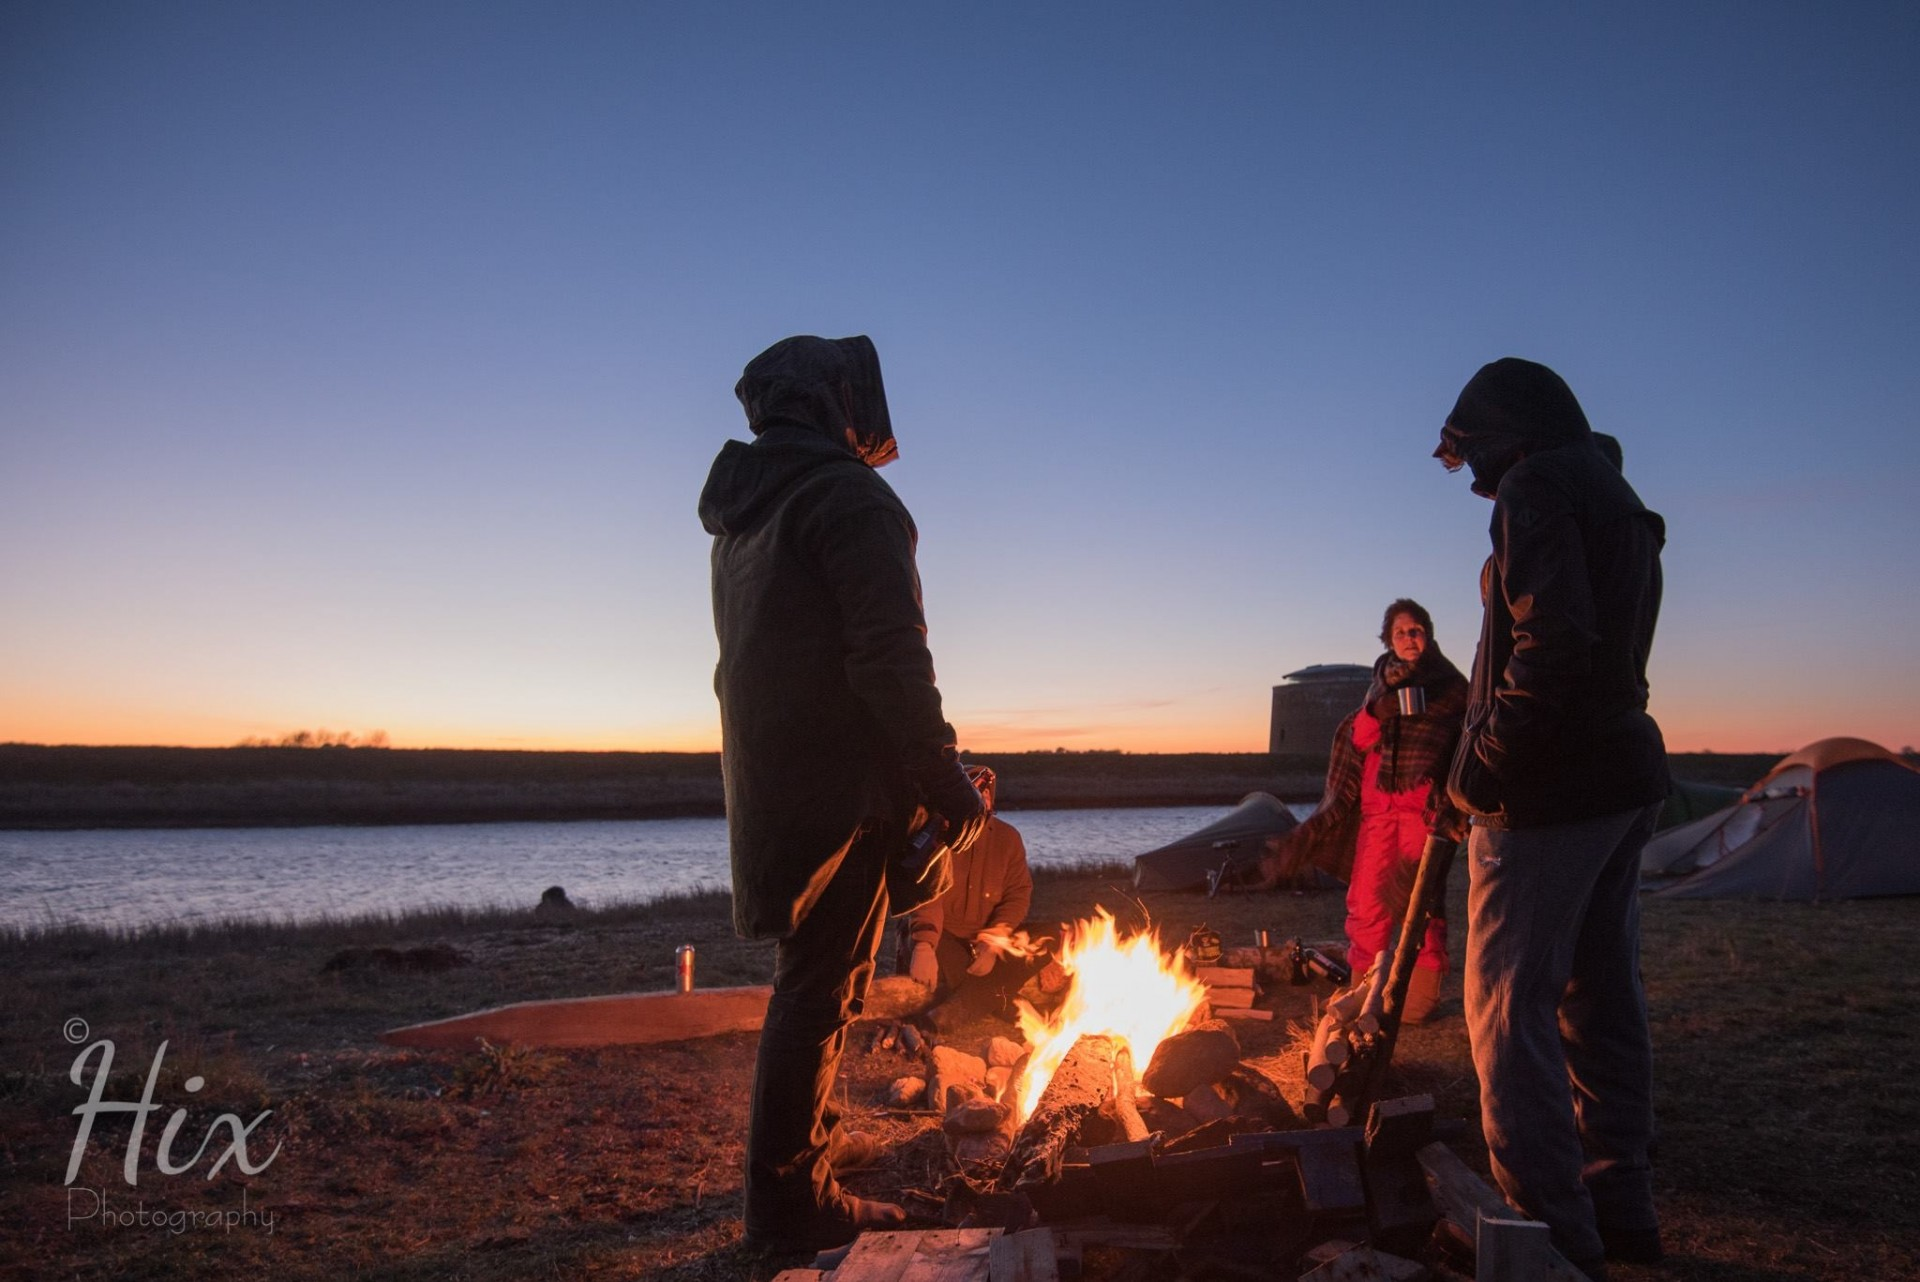 Warm around the fire at sunset on a wild camp